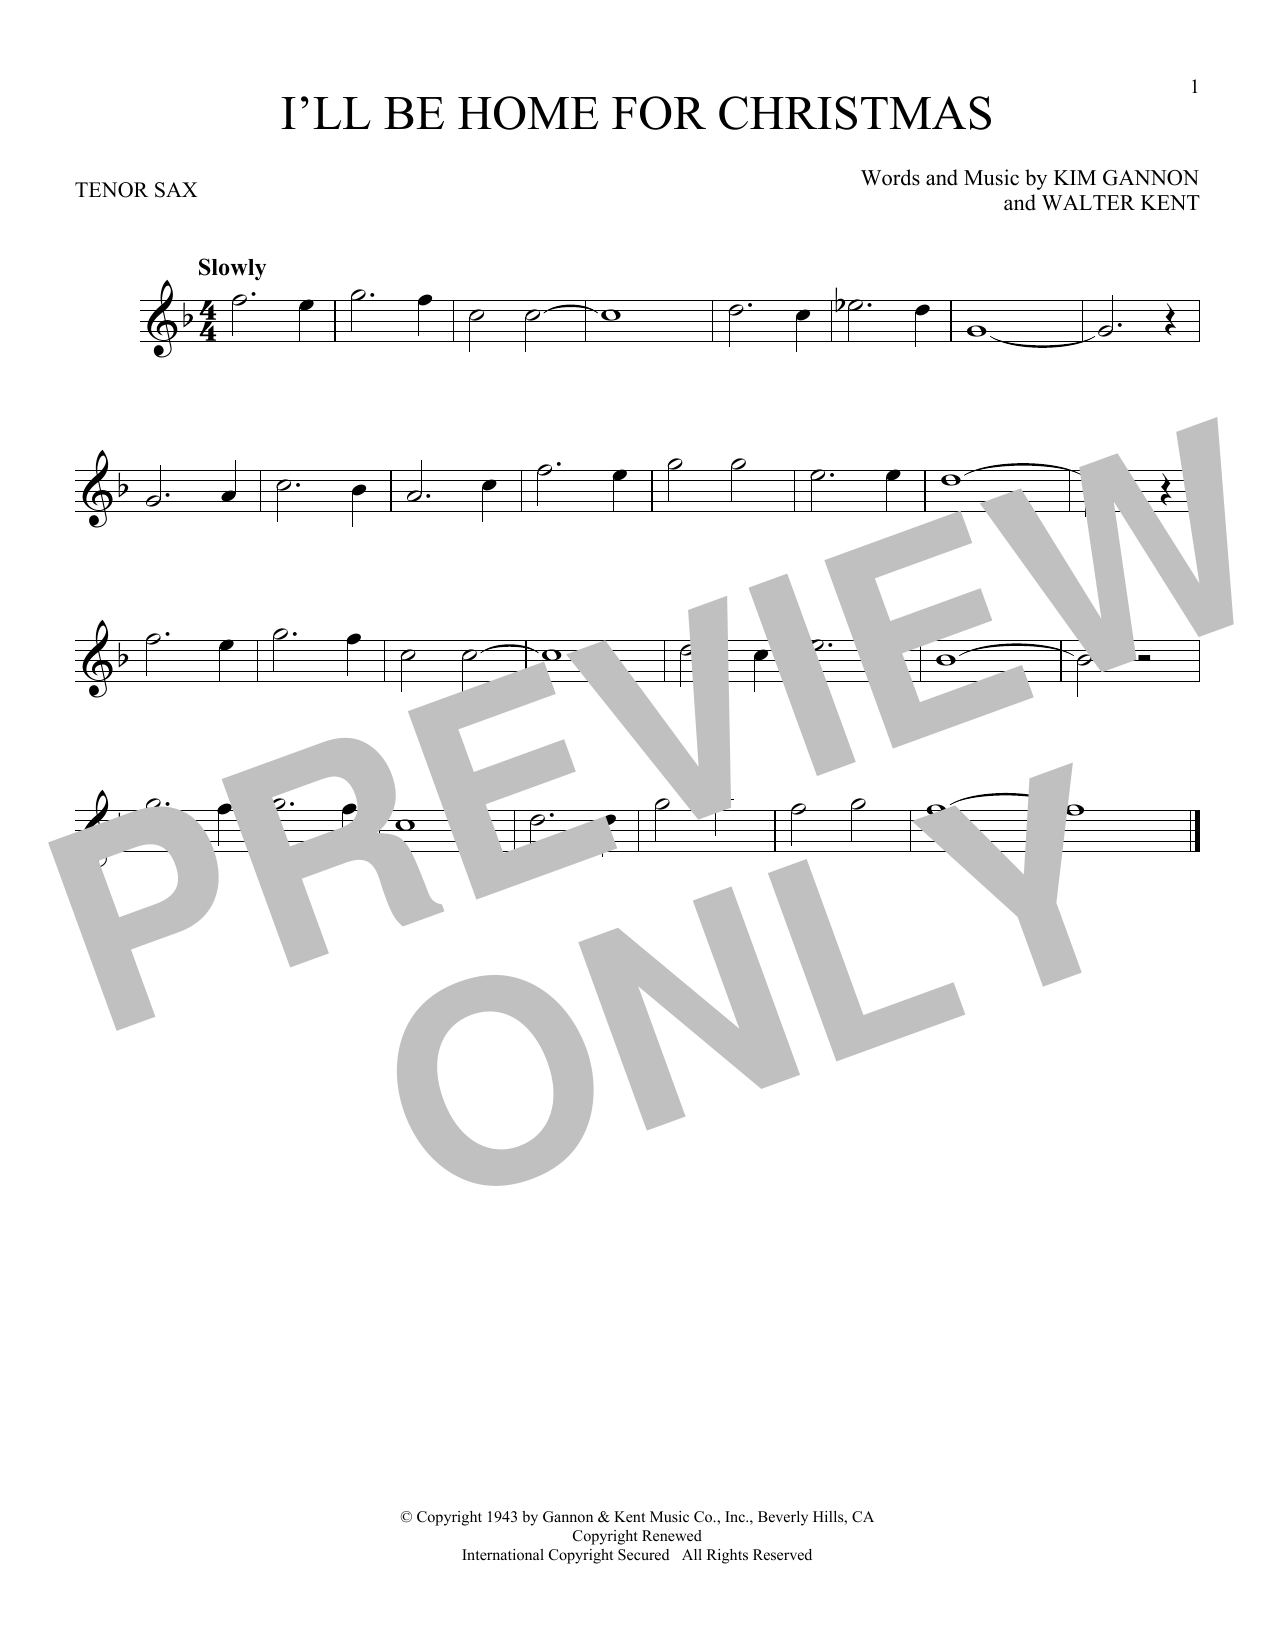 Sheet Music Digital Files To Print - Licensed Walter Kent Digital ...